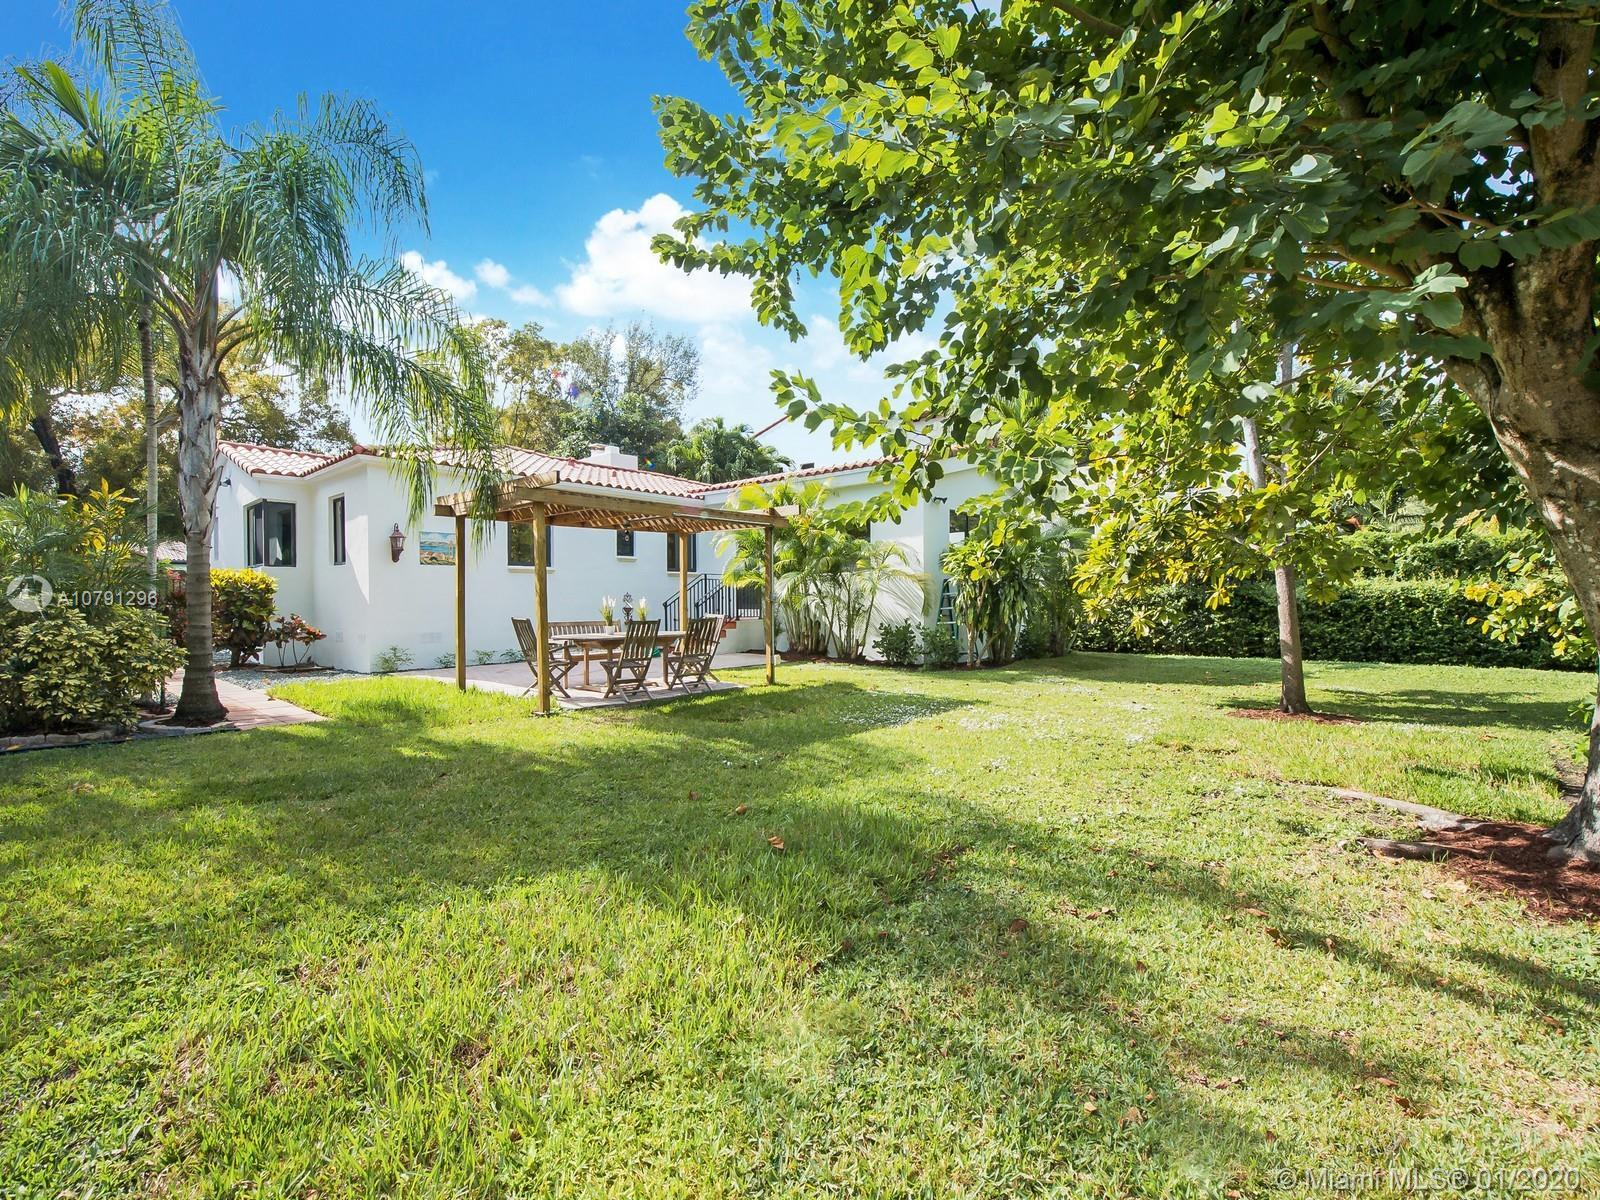 One of the most sought after locations in Coral Gables, walking distance to Miracle Mile, the house